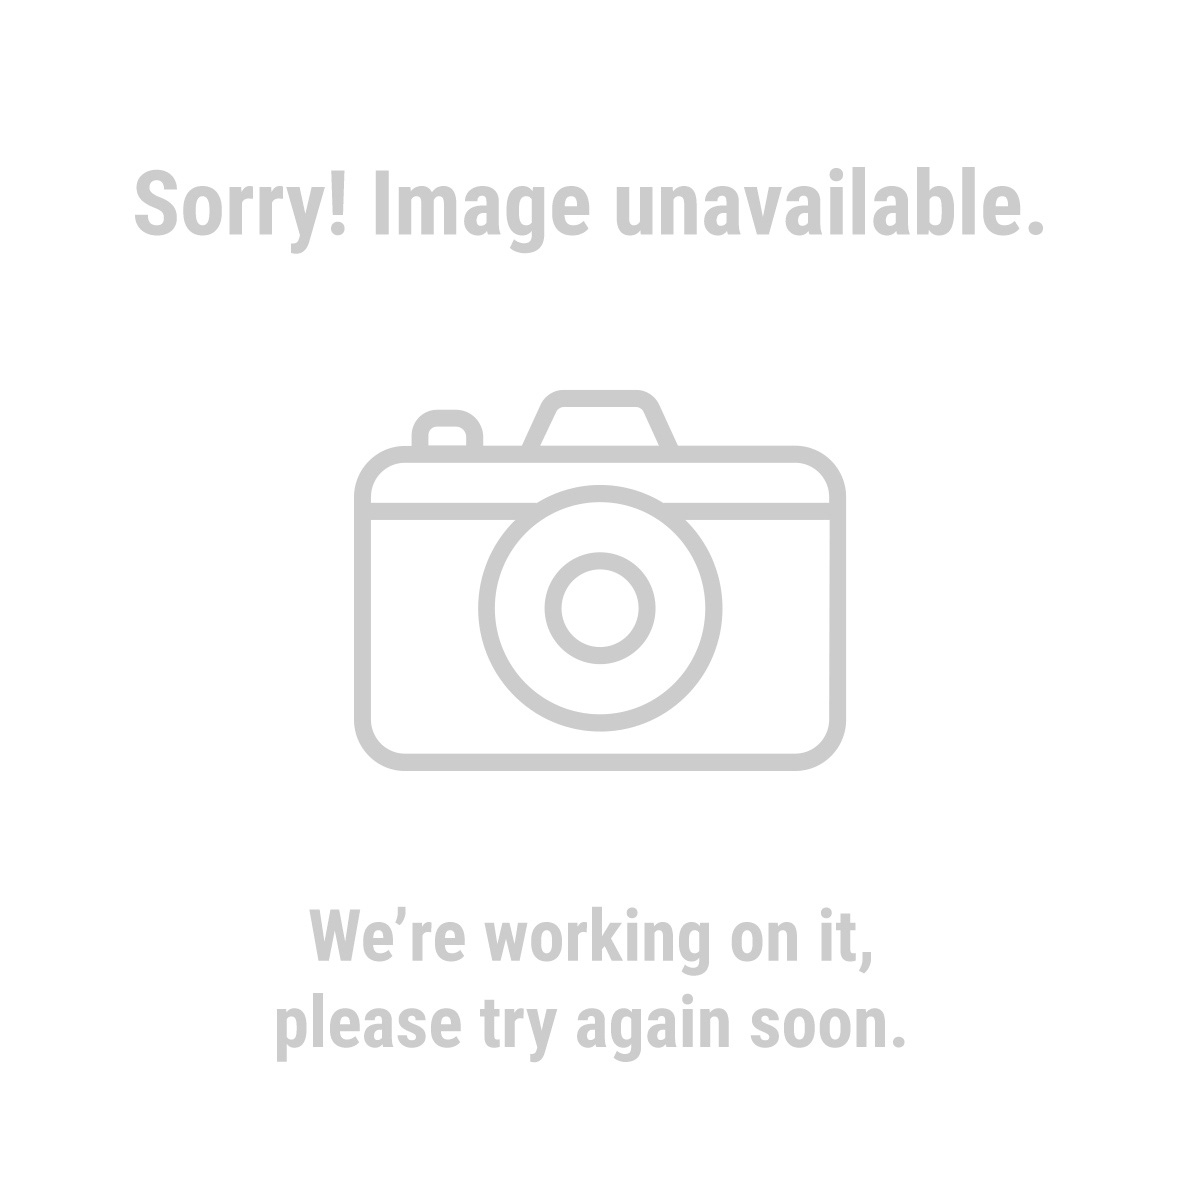 West Chester 68002 Fleece Lined Pigskin Driver's Gloves, Large